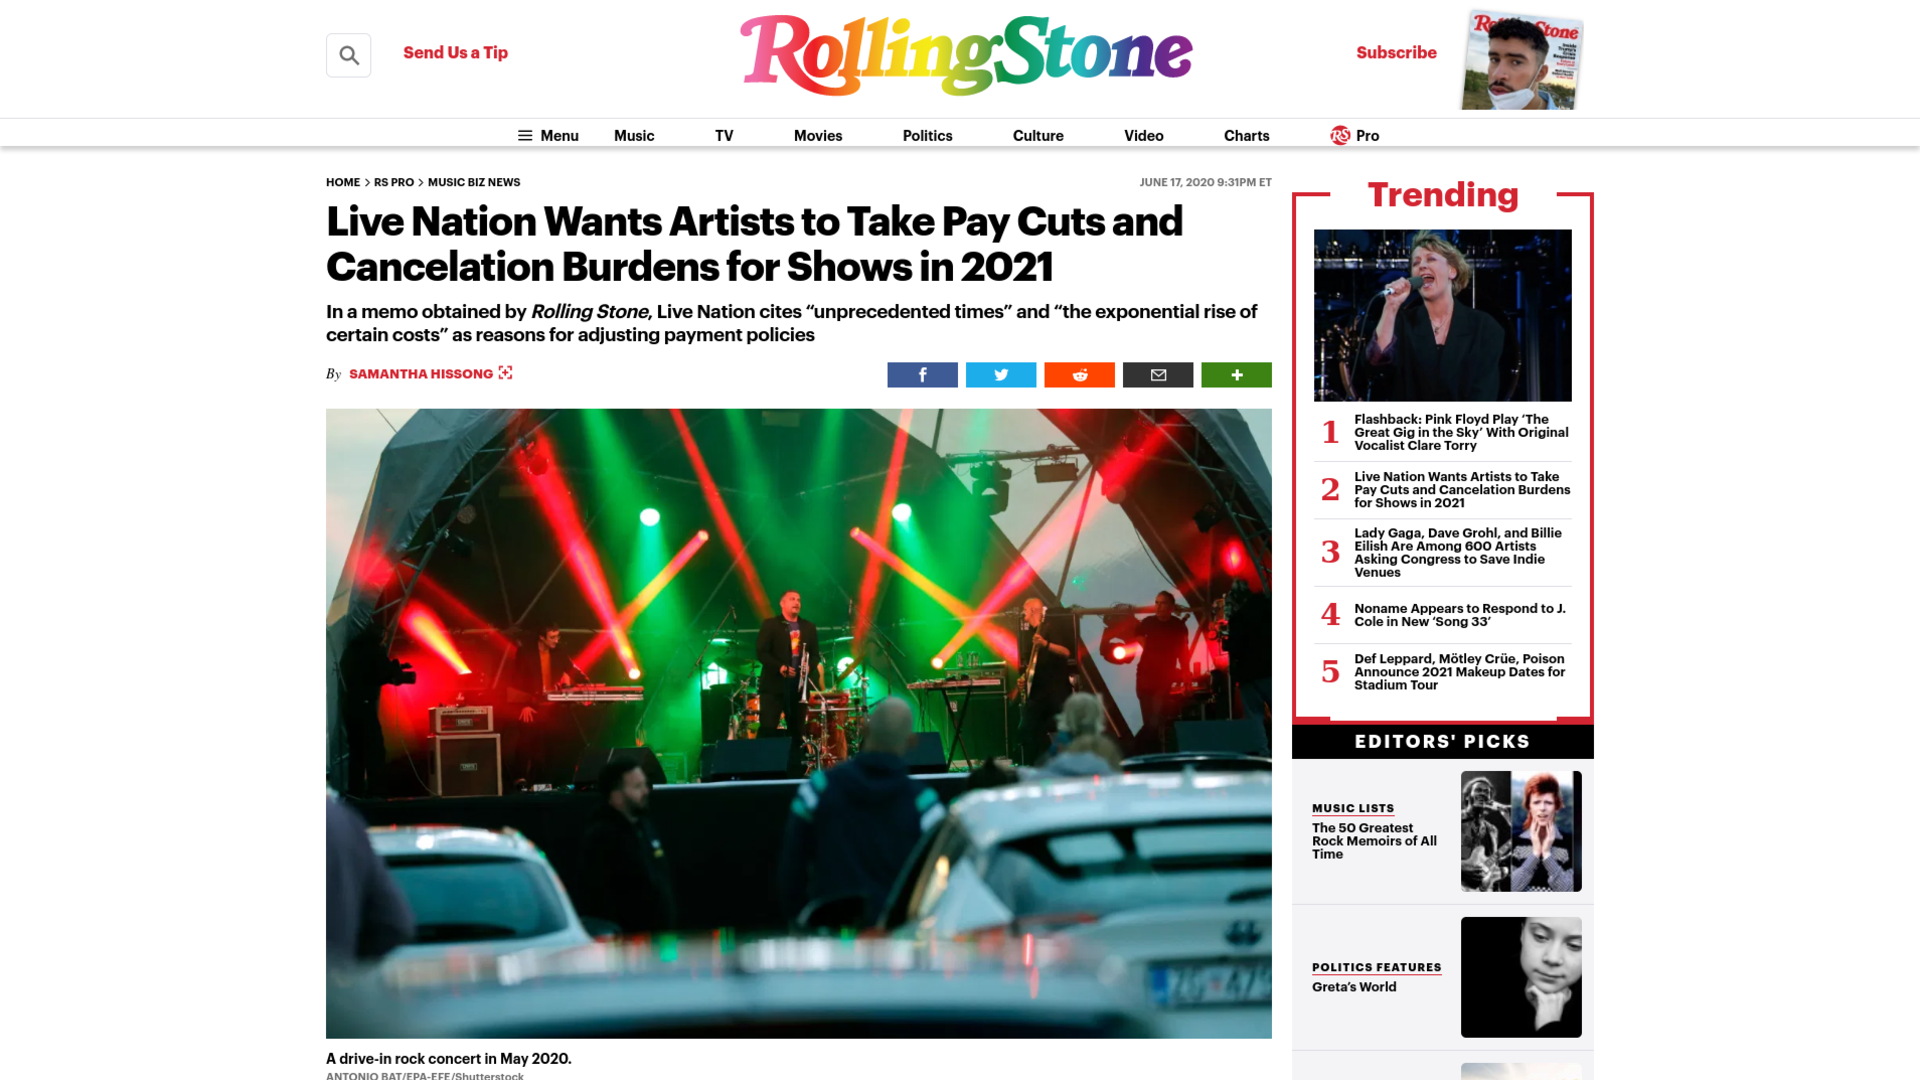 Fairness Rocks News Live Nation Wants Artists to Take Pay Cuts and Cancelation Burdens for Shows in 2021